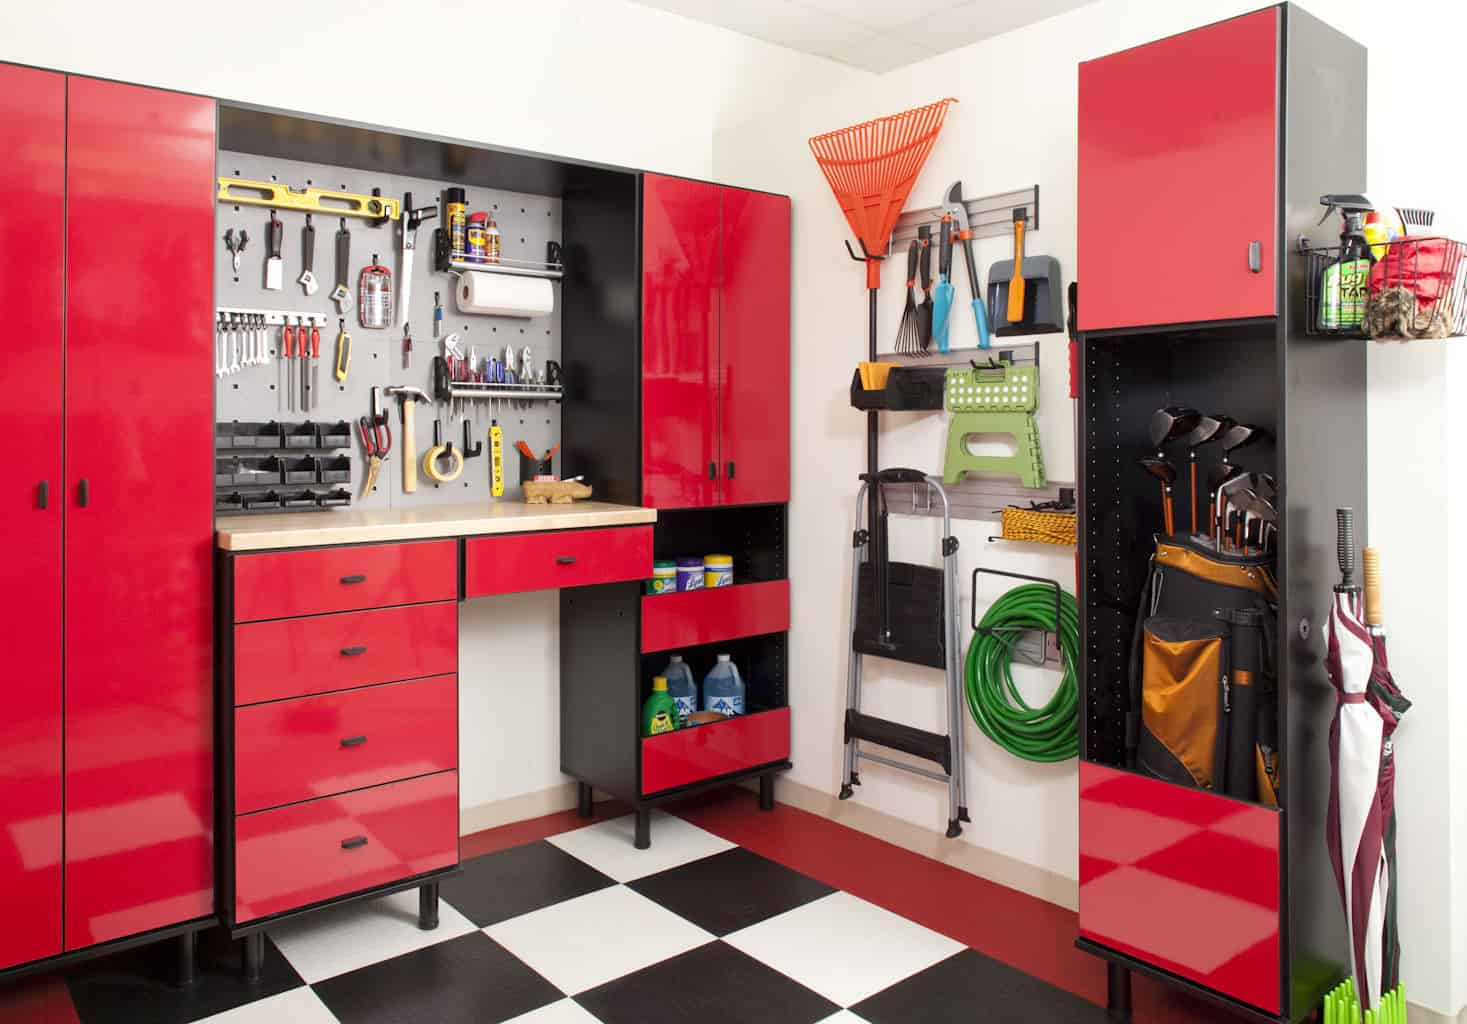 I sure wish I had this garage storage system. It's a work center and storage system tucked into the corner of the garage with custom black and white checkered flooring.